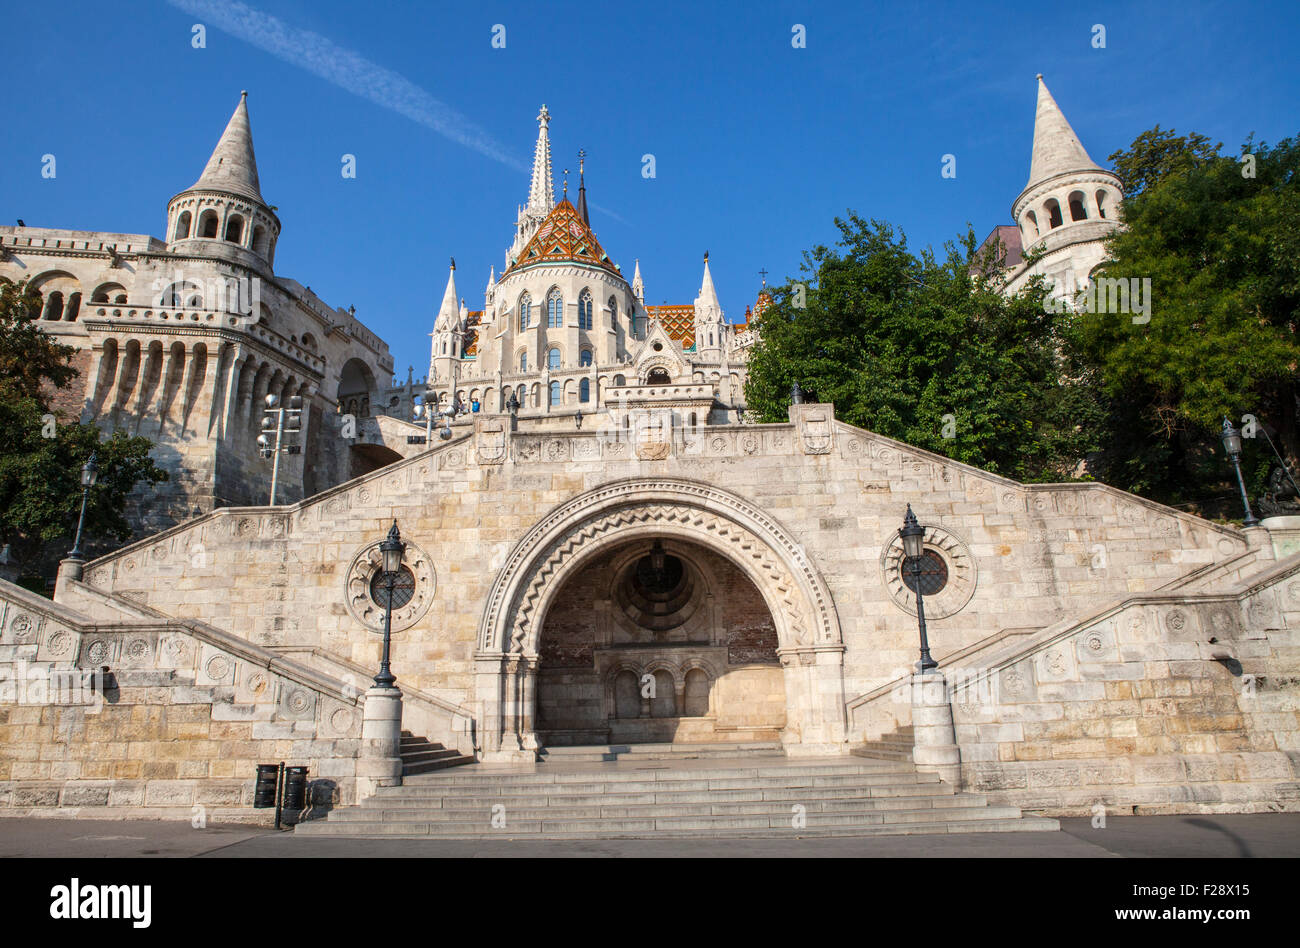 The historic Fisherman's Bastion in Budapest, Hungary. Stock Photo